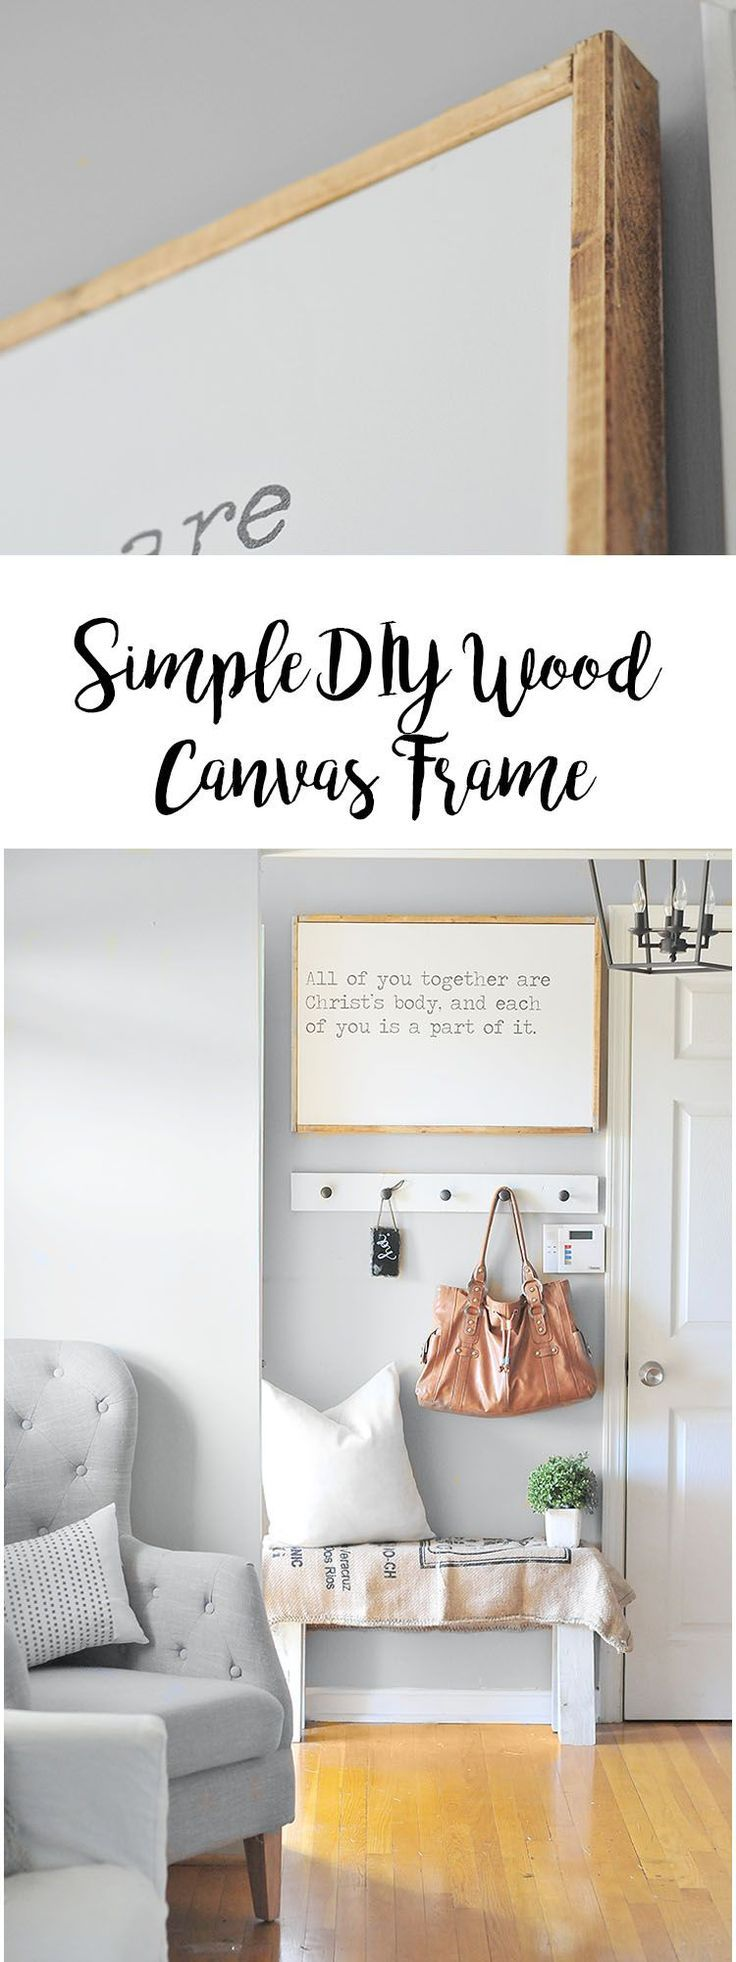 Diy wood canvas frame small decor pinterest diy decor and